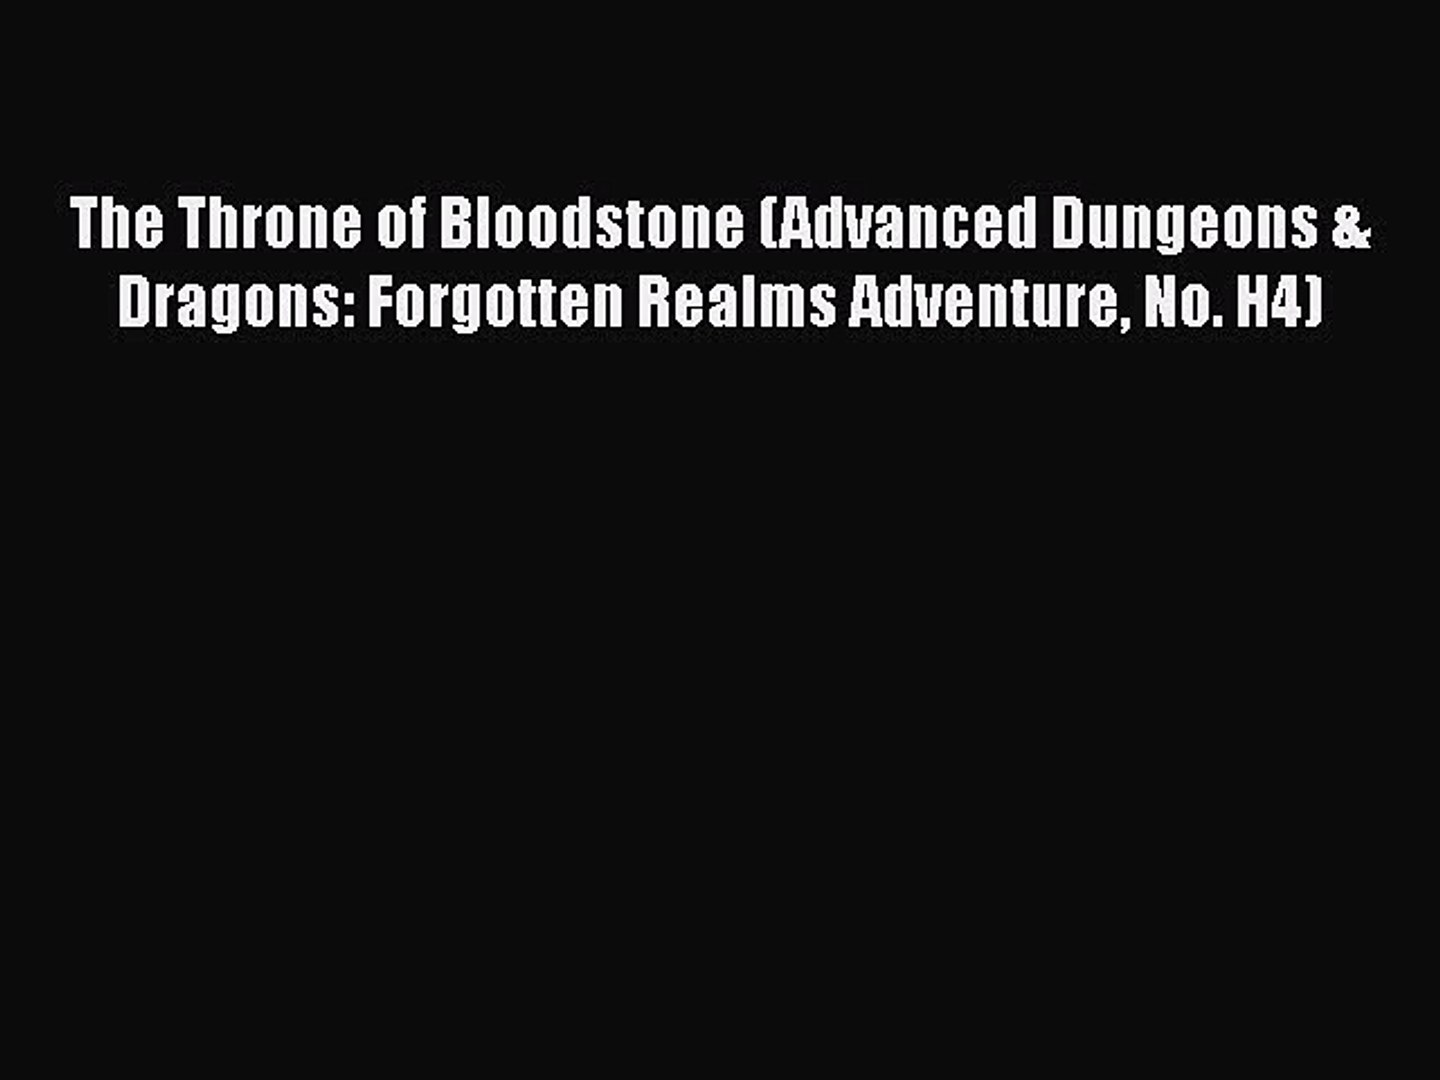 Read The Throne of Bloodstone (Advanced Dungeons & Dragons: Forgotten Realms Adventure No.